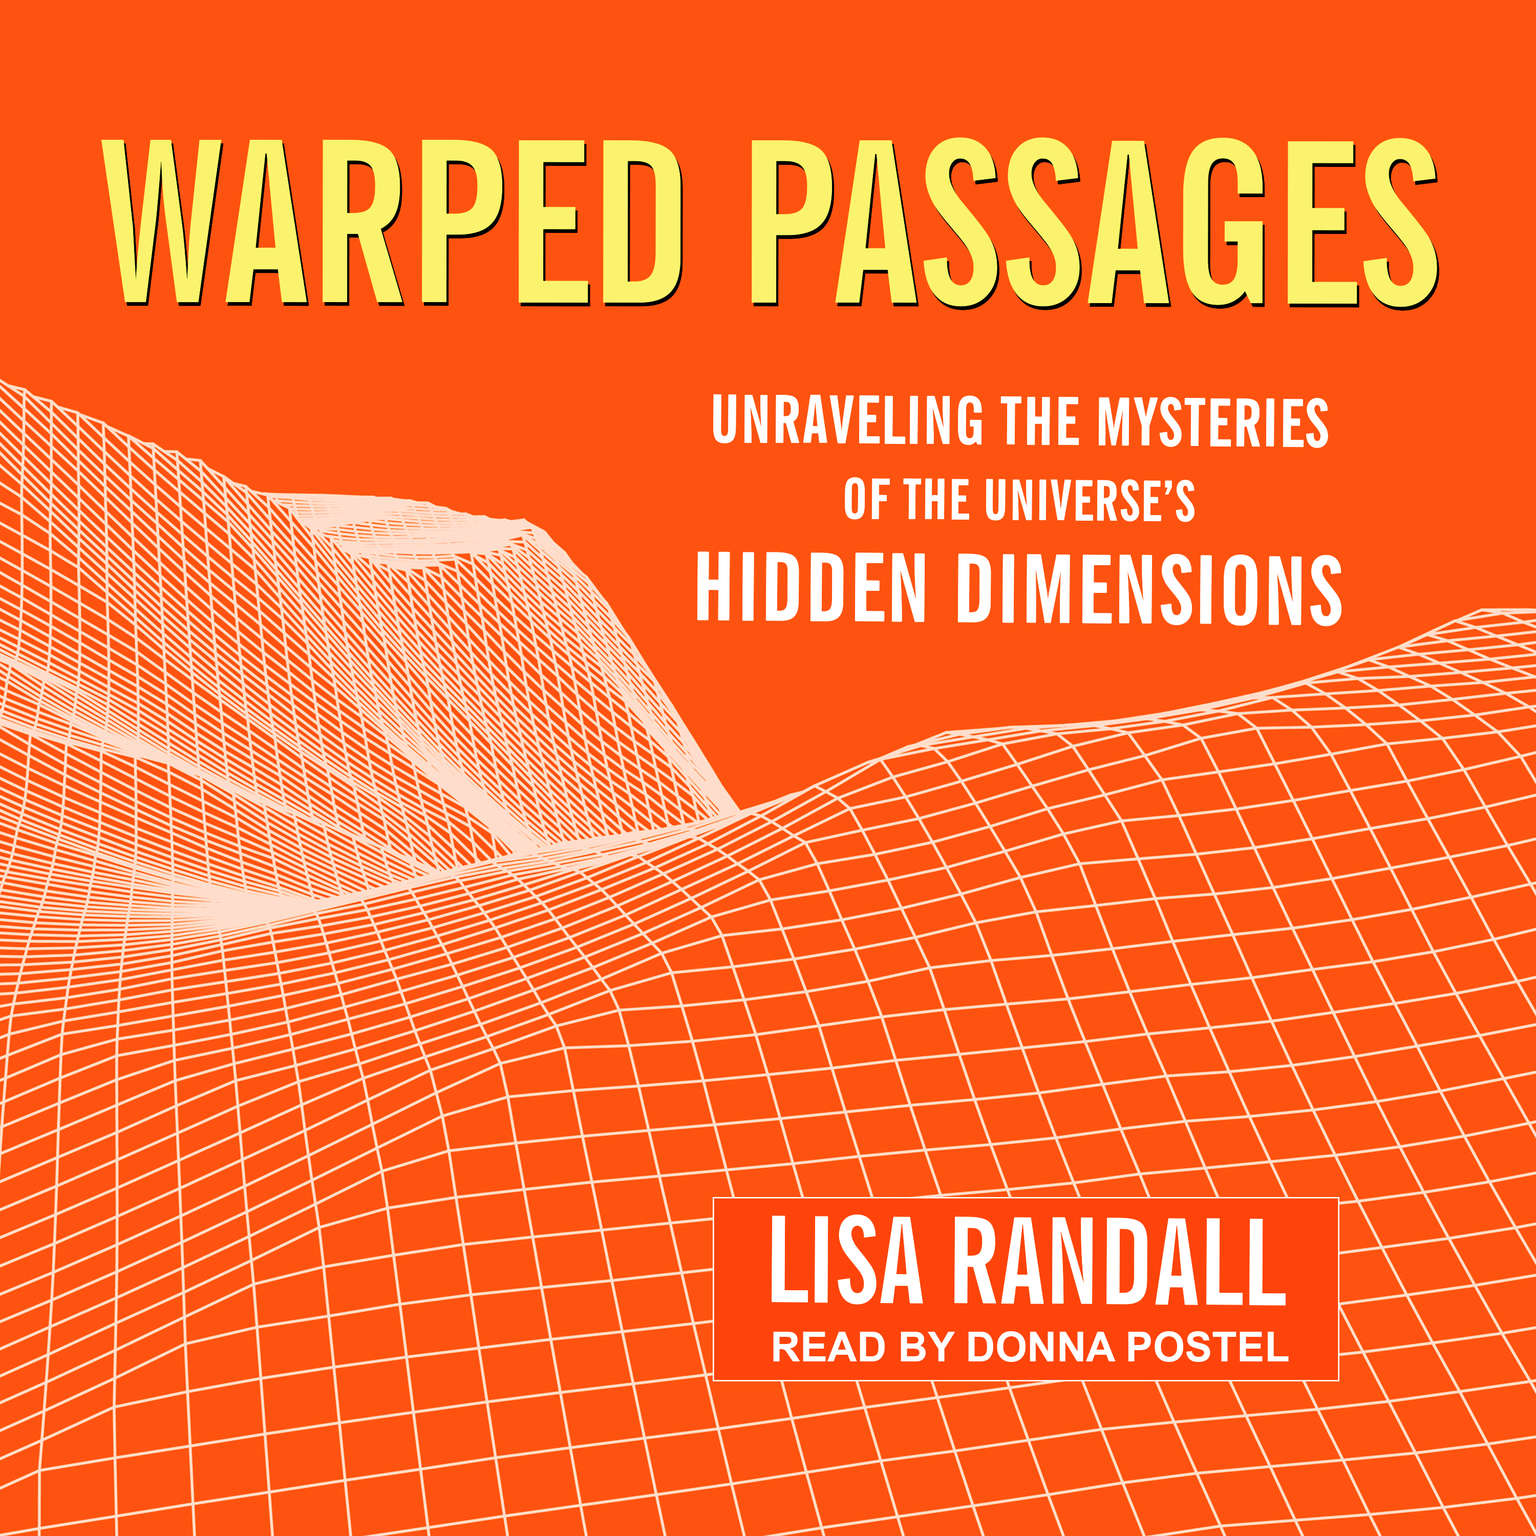 Warped Passages: Unraveling the Mysteries of the Universes Hidden Dimensions Audiobook, by Lisa Randall